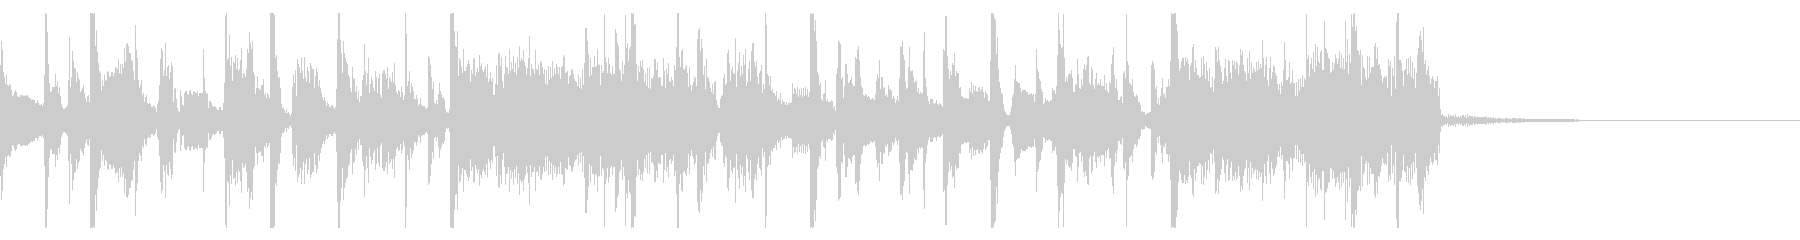 Funky jingle's unreproduced waveform